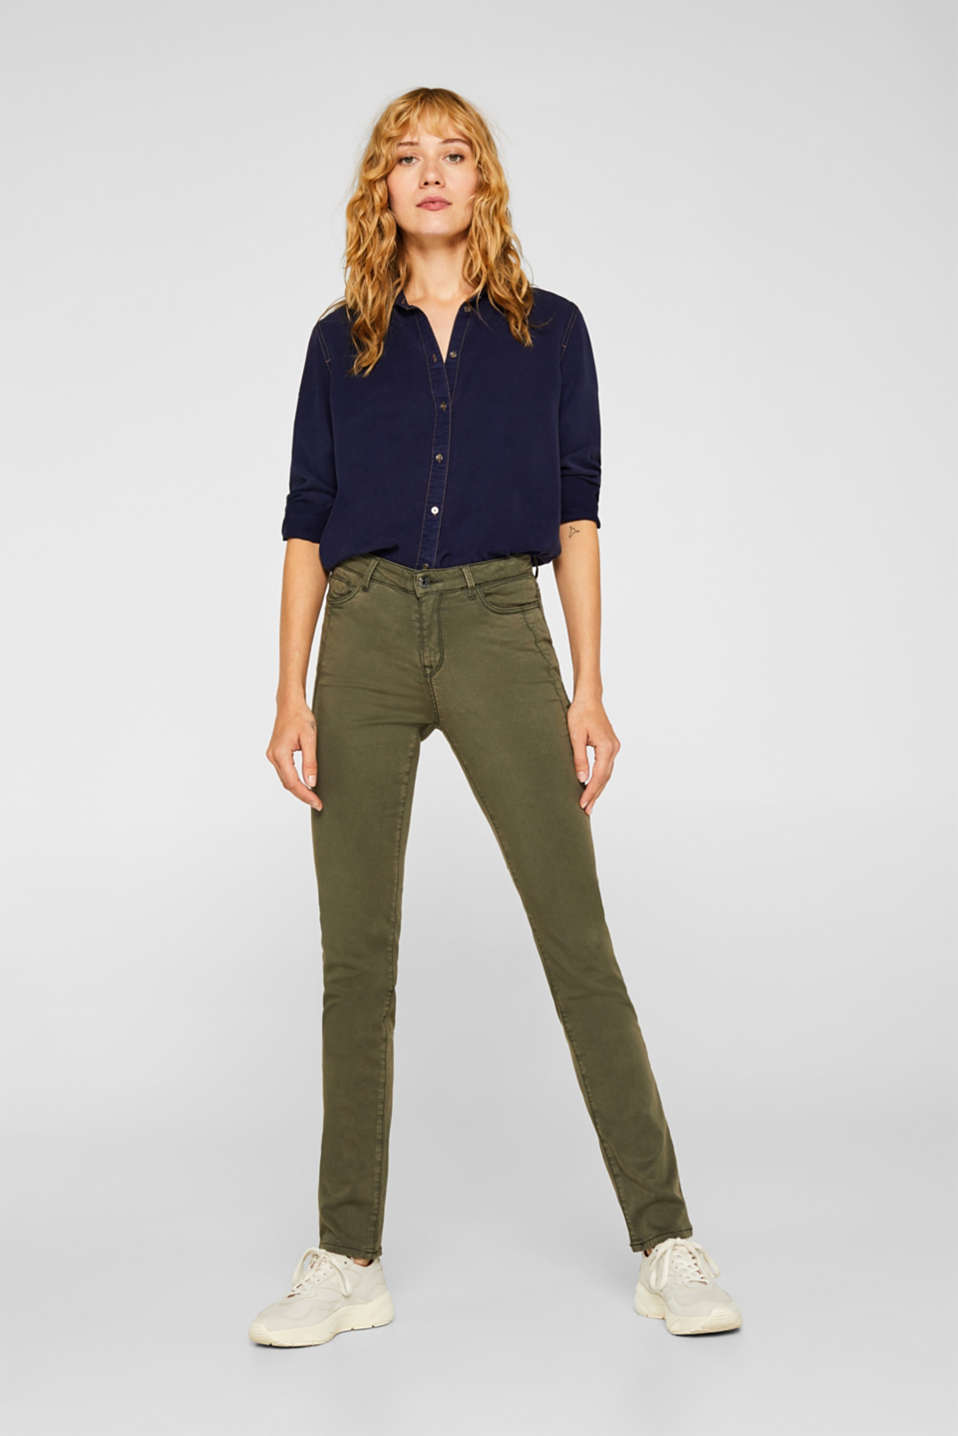 Esprit - Stretch-Pants mit Pattentaschen